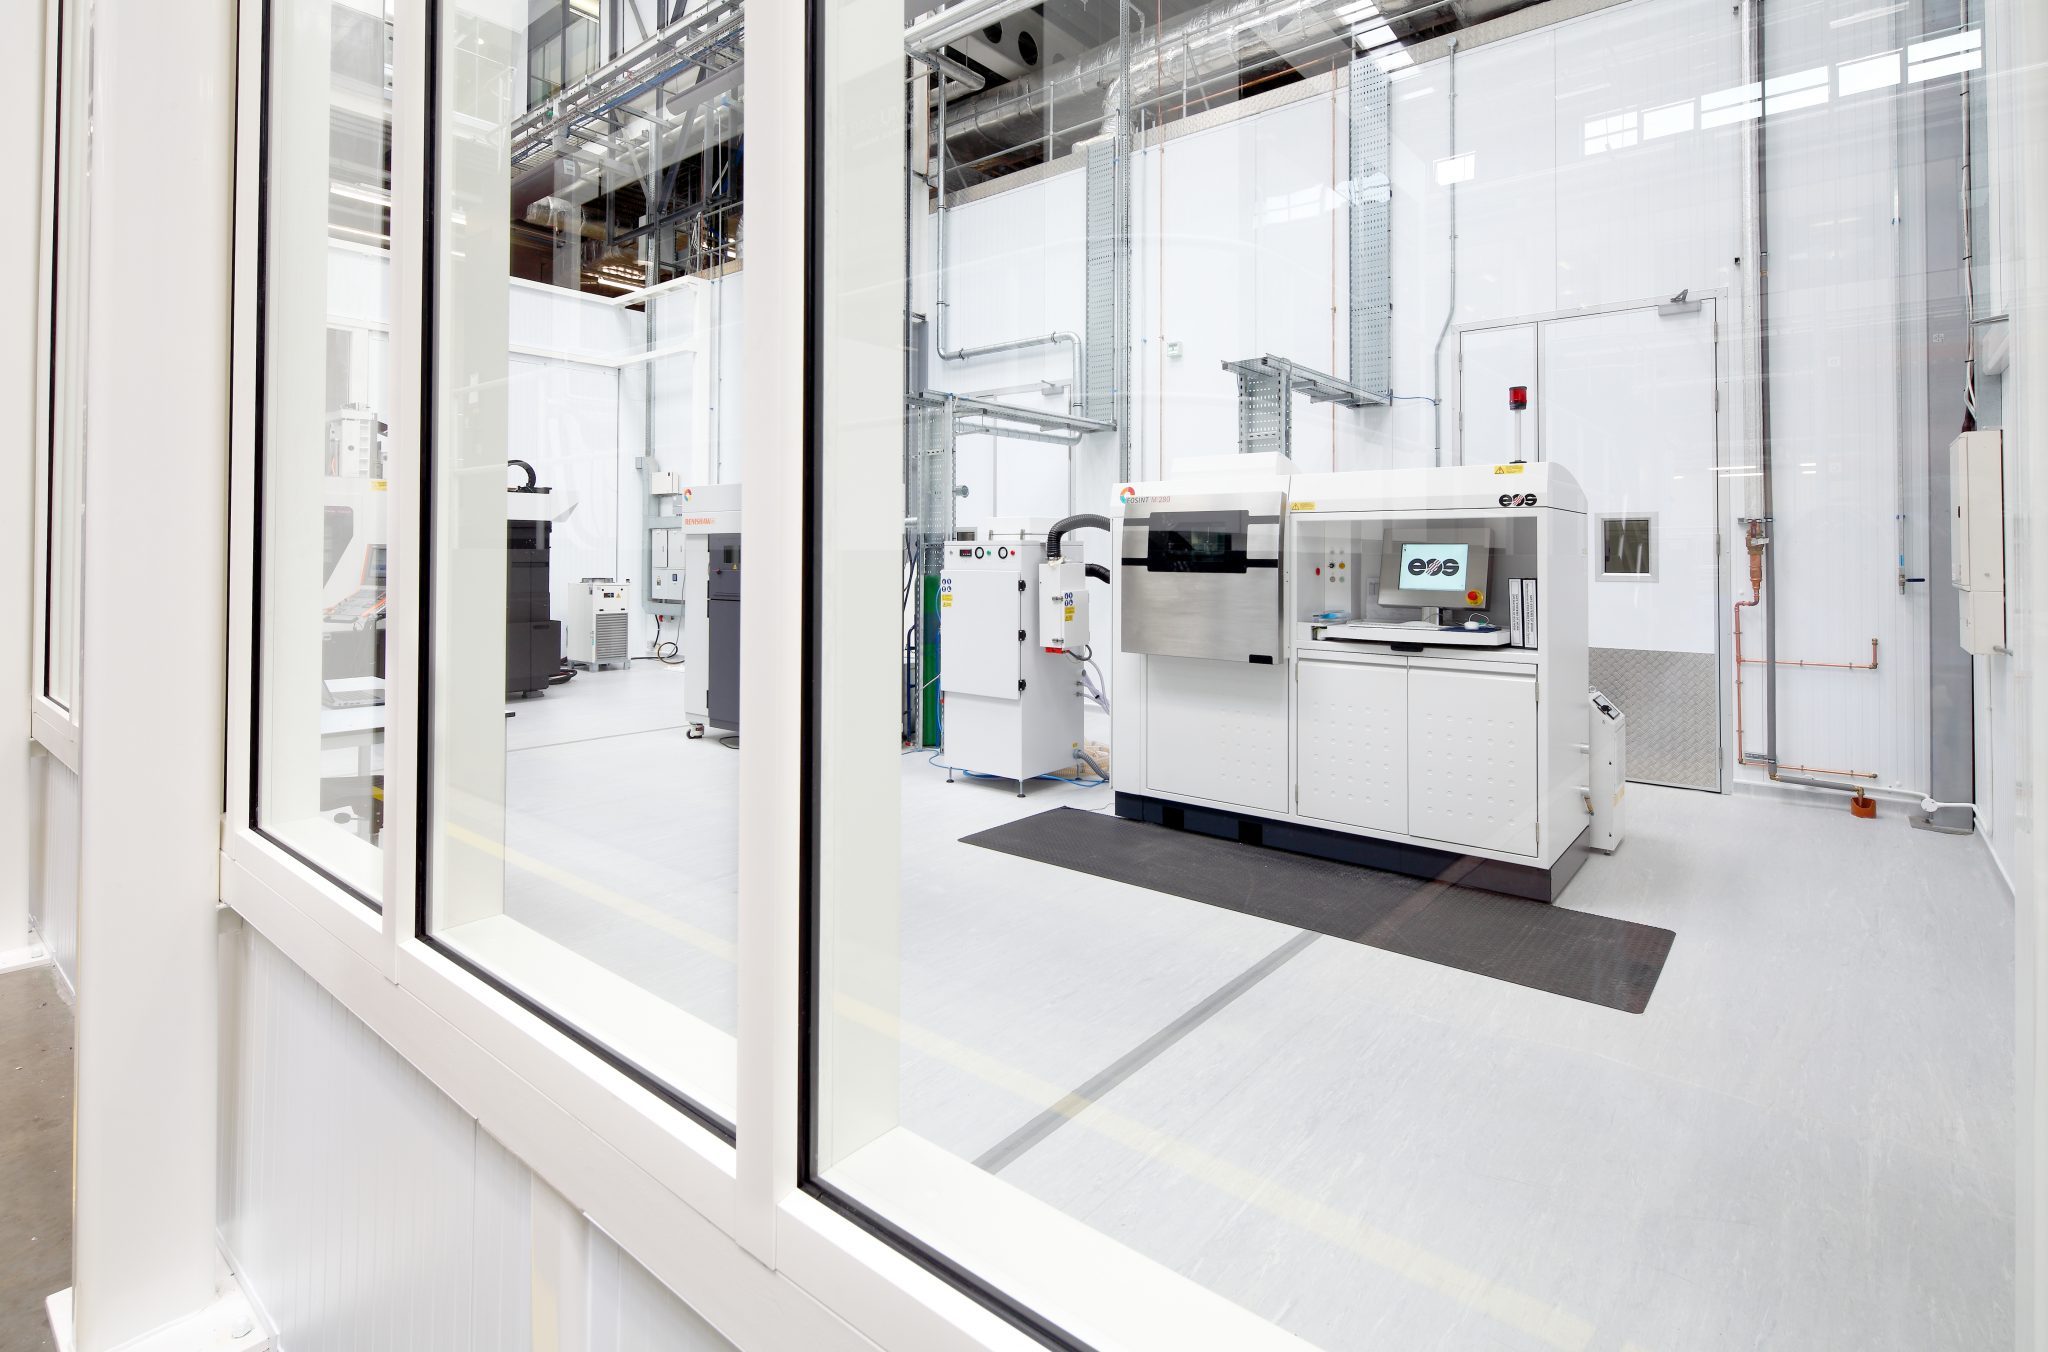 Inside the National Centre for Additive Manufacturing certification at Coventry's MTC. Photo via The MTC